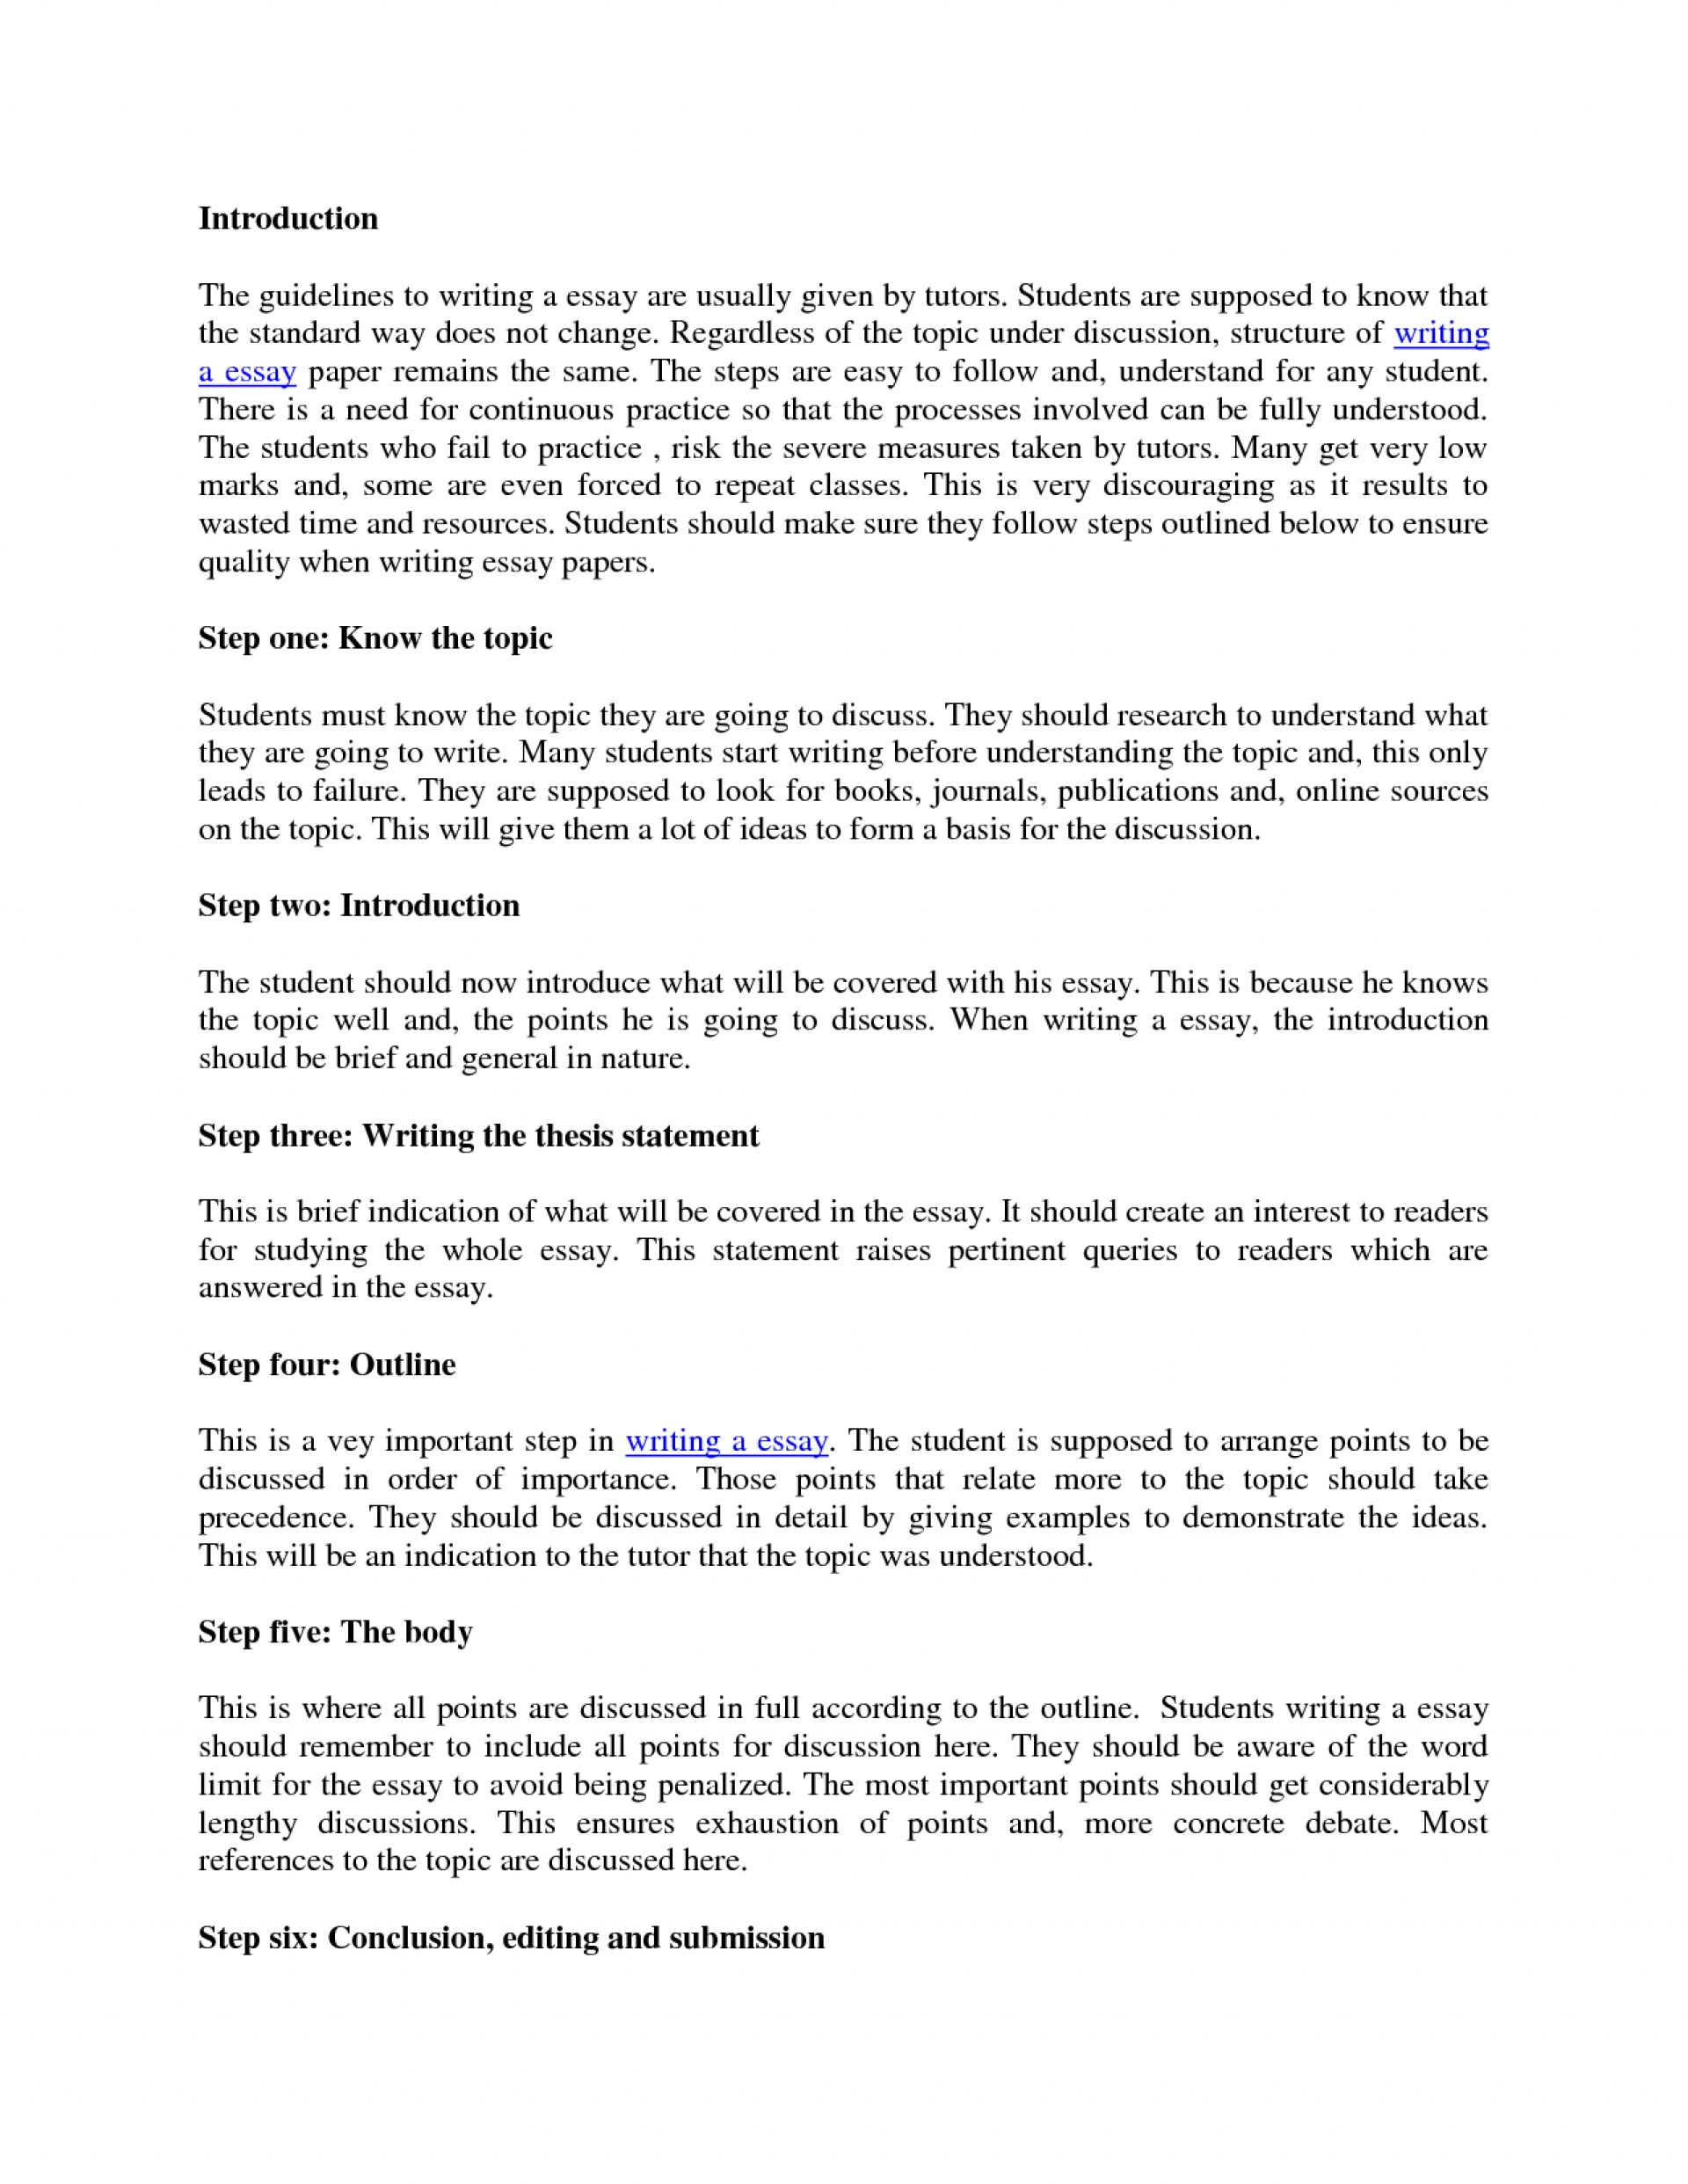 008 Xolufi2epx Essay Example Easy Way To Write Excellent An Argumentative How Analytical In Ielts Task 2 1920